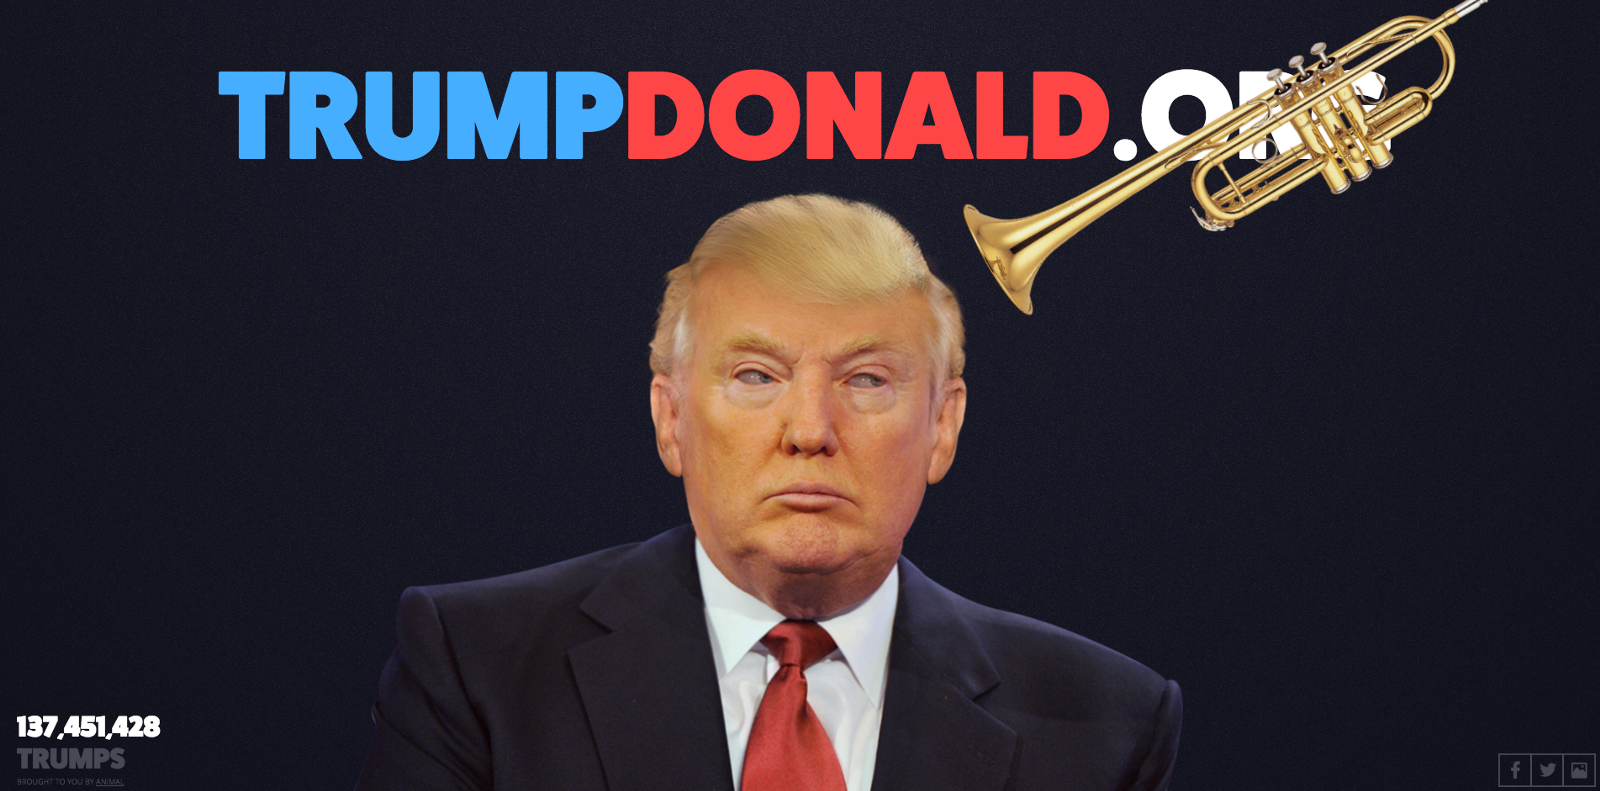 Trump Donald interactive project